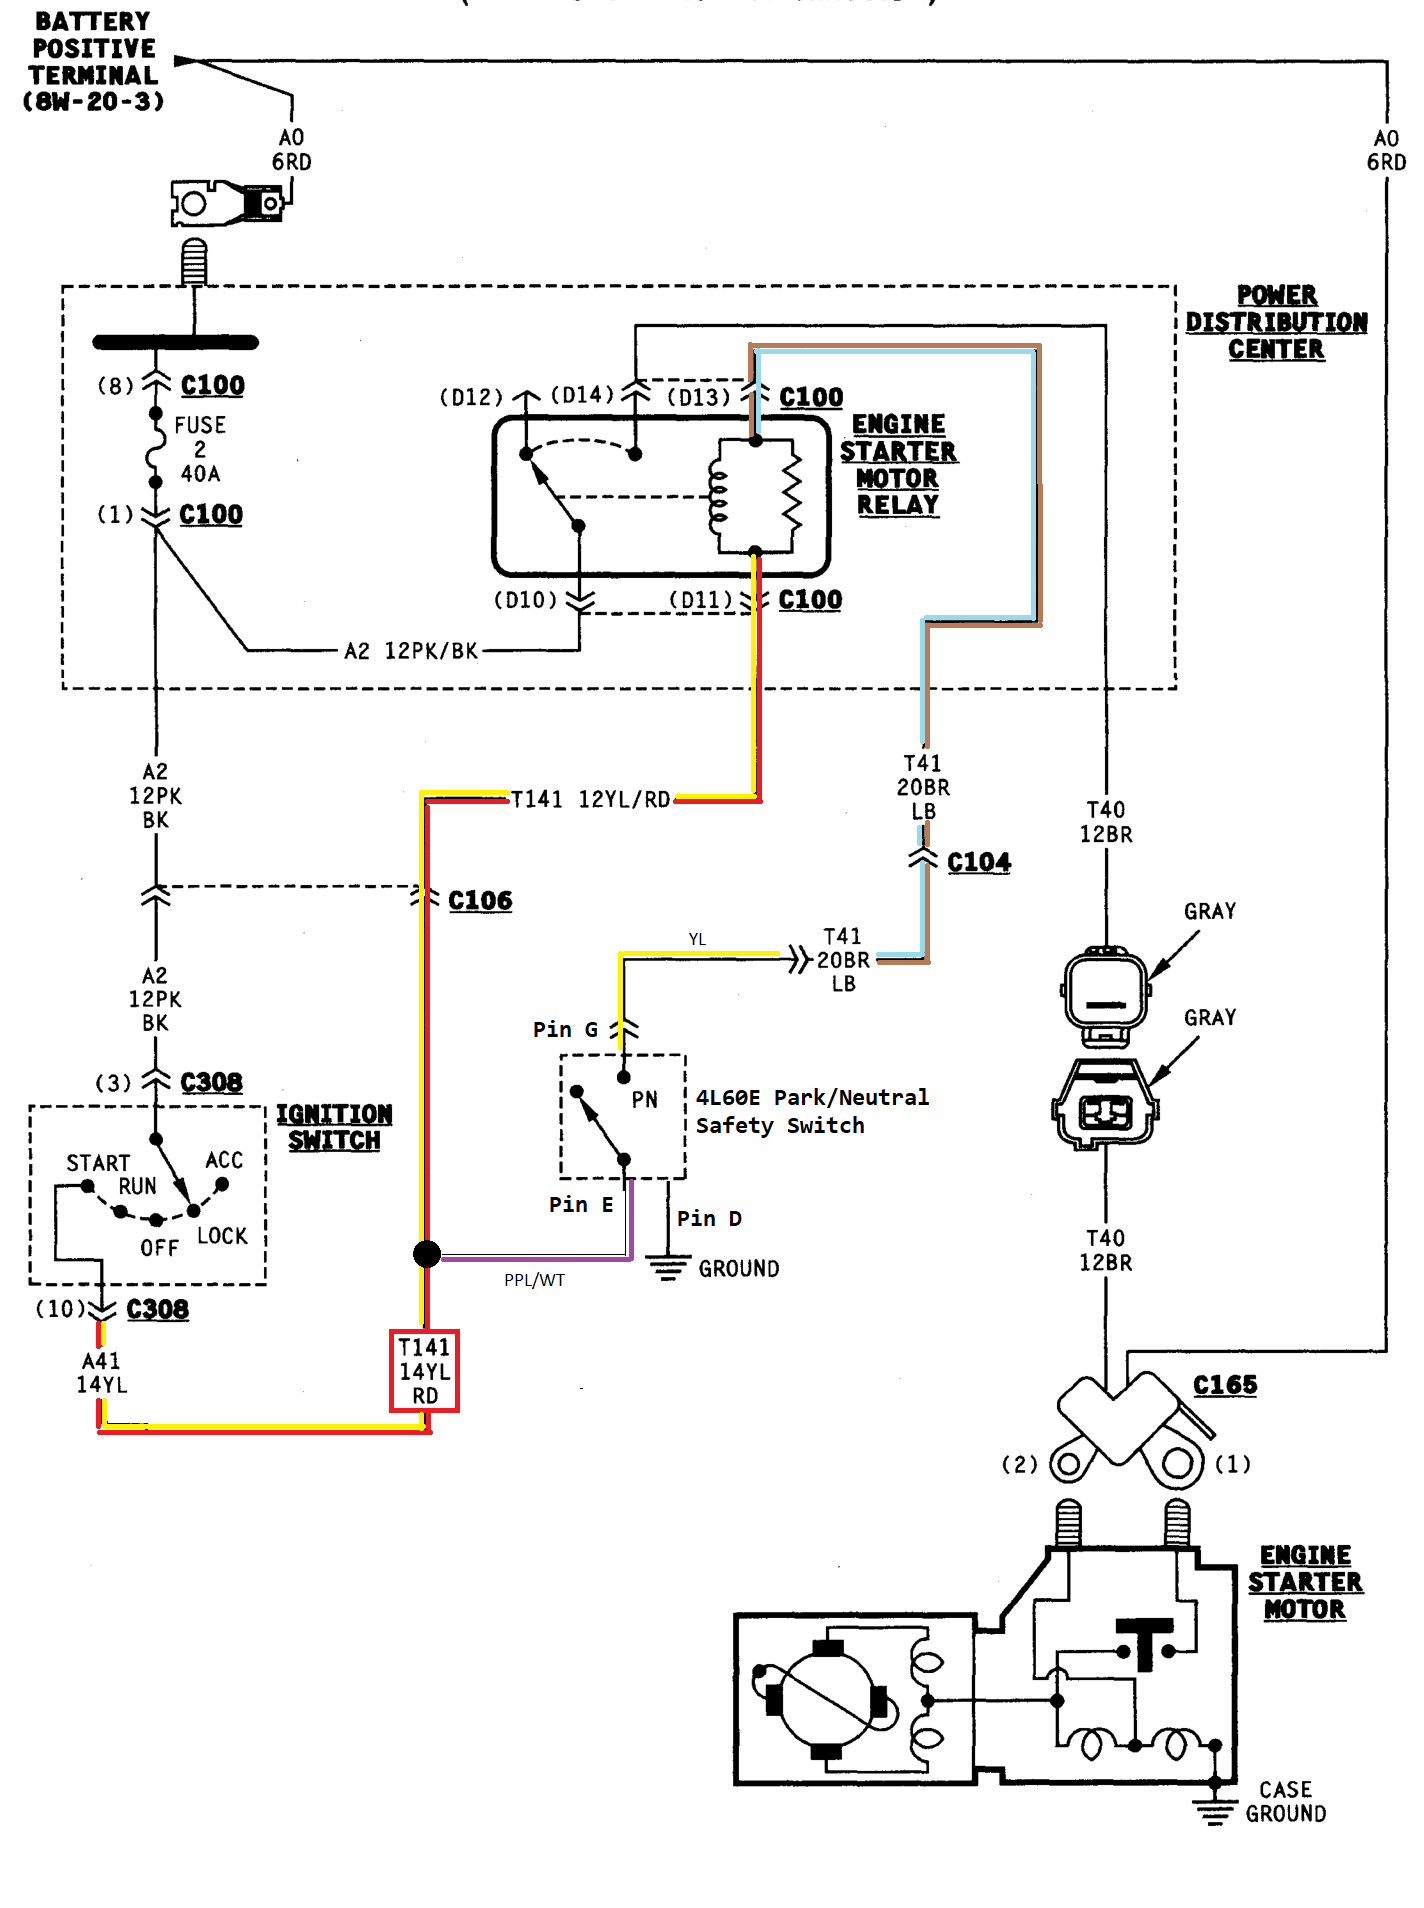 Wiring Diagram For Neutral Safety Switch Gm